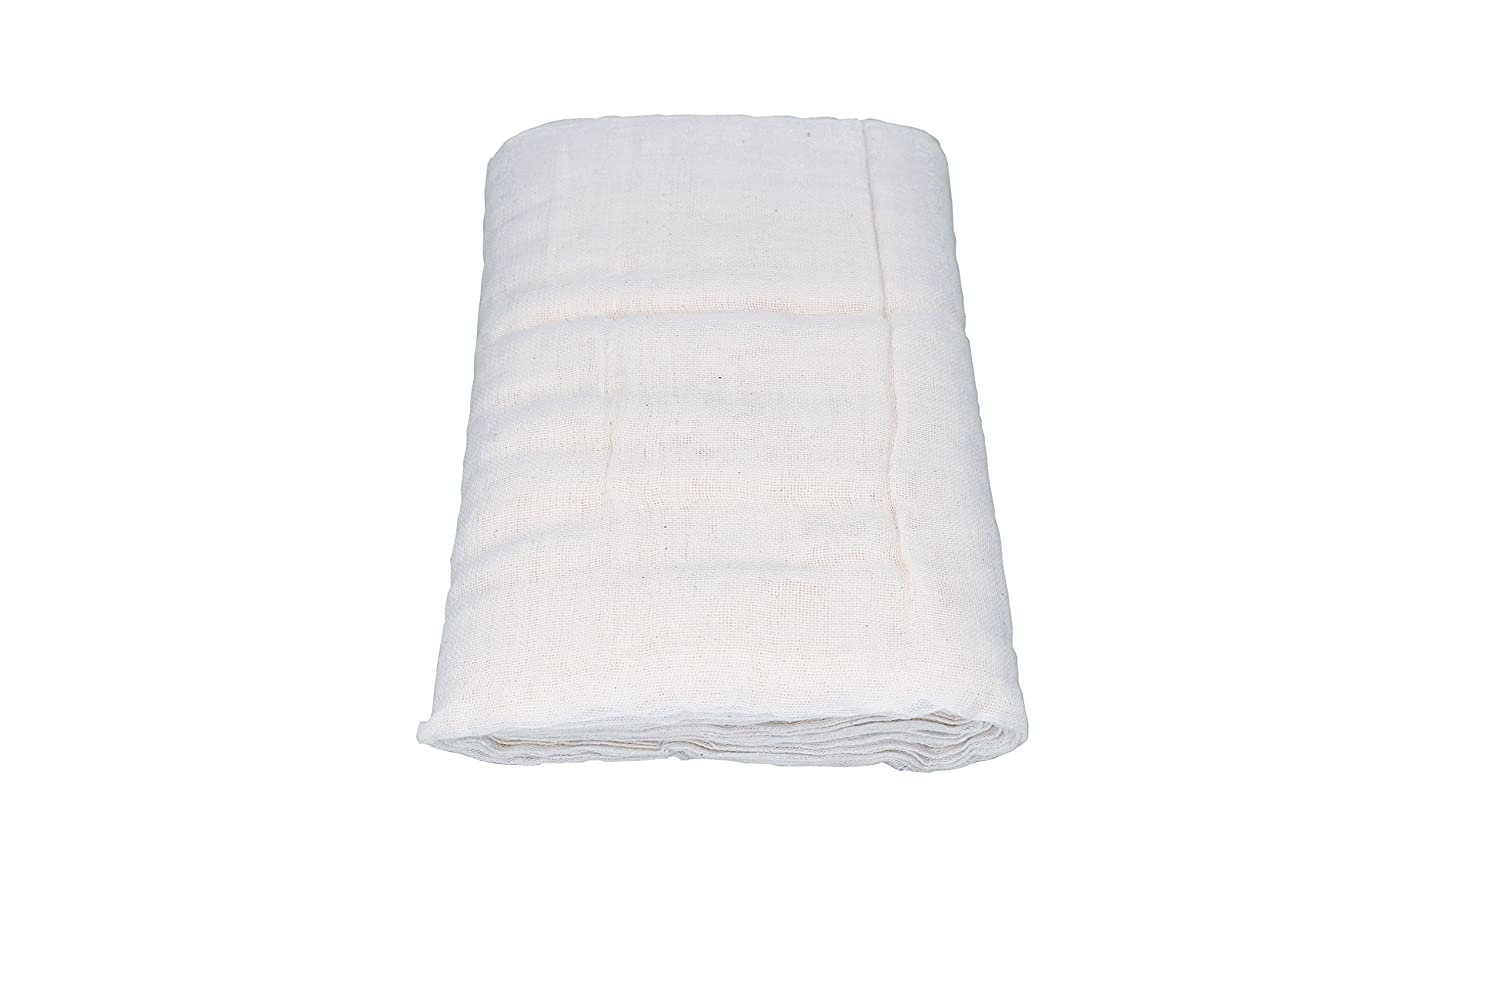 100% Natural Unbleached Cotton Cheesecloth . Quality Fine Mesh for Excellent Straining. Lightweight Durable Reusable and Breathable. Many Kitchen and Craft uses. Grade 60. Economical 45 sq feet eComRex HBG-CC-W-1